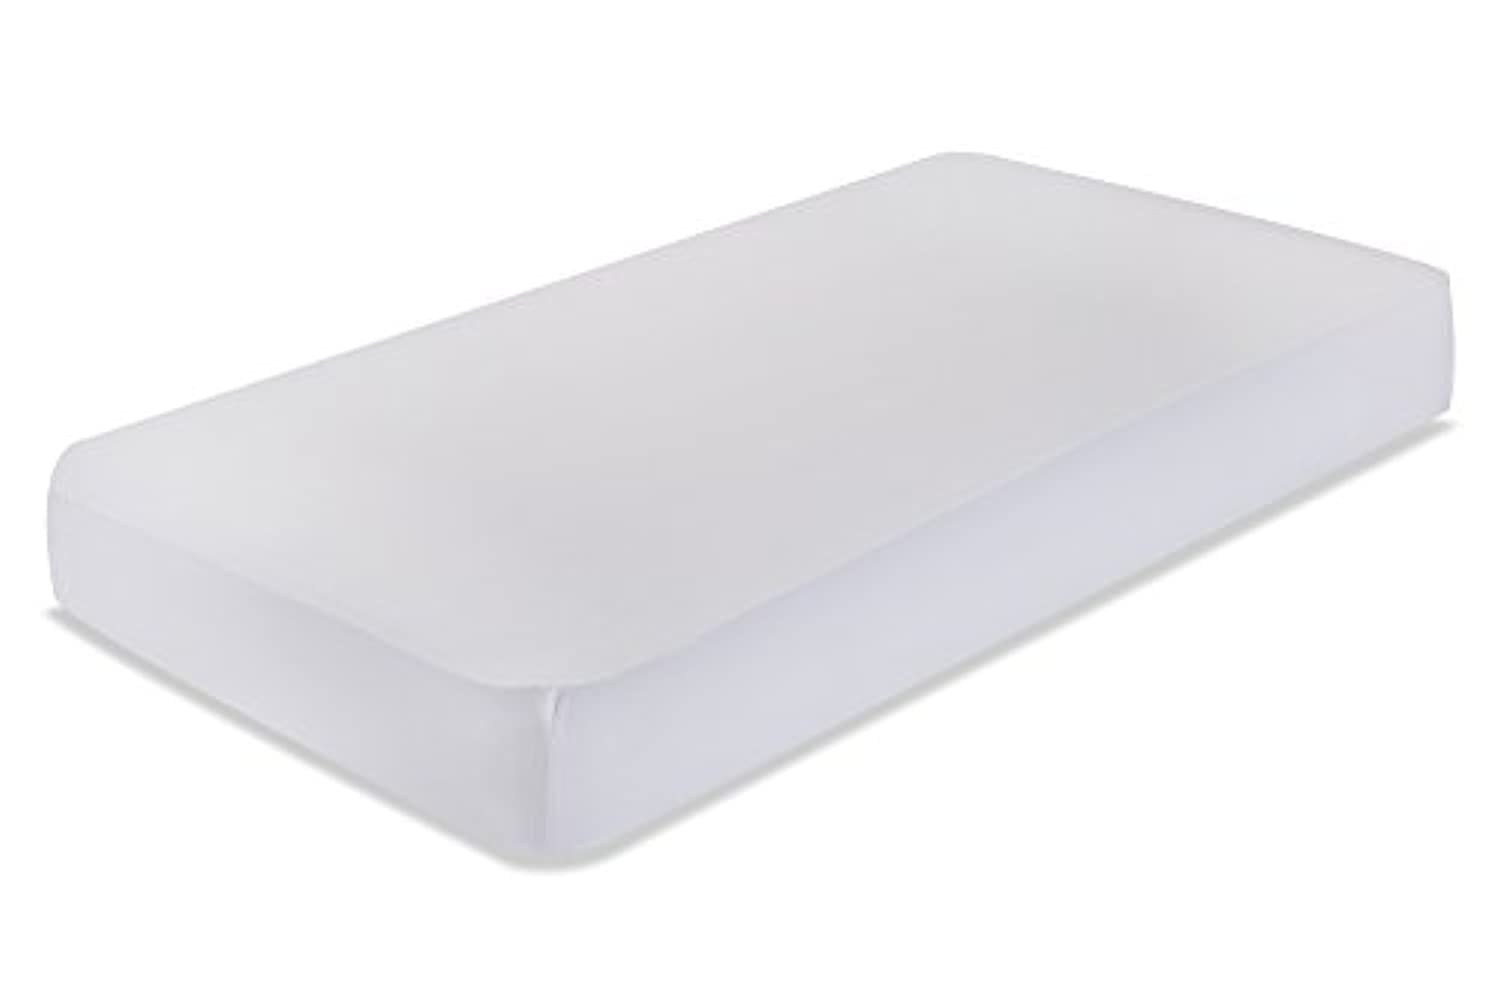 LA Baby Fitted Sheet for Full Size Crib, White by LA Baby [並行輸入品]